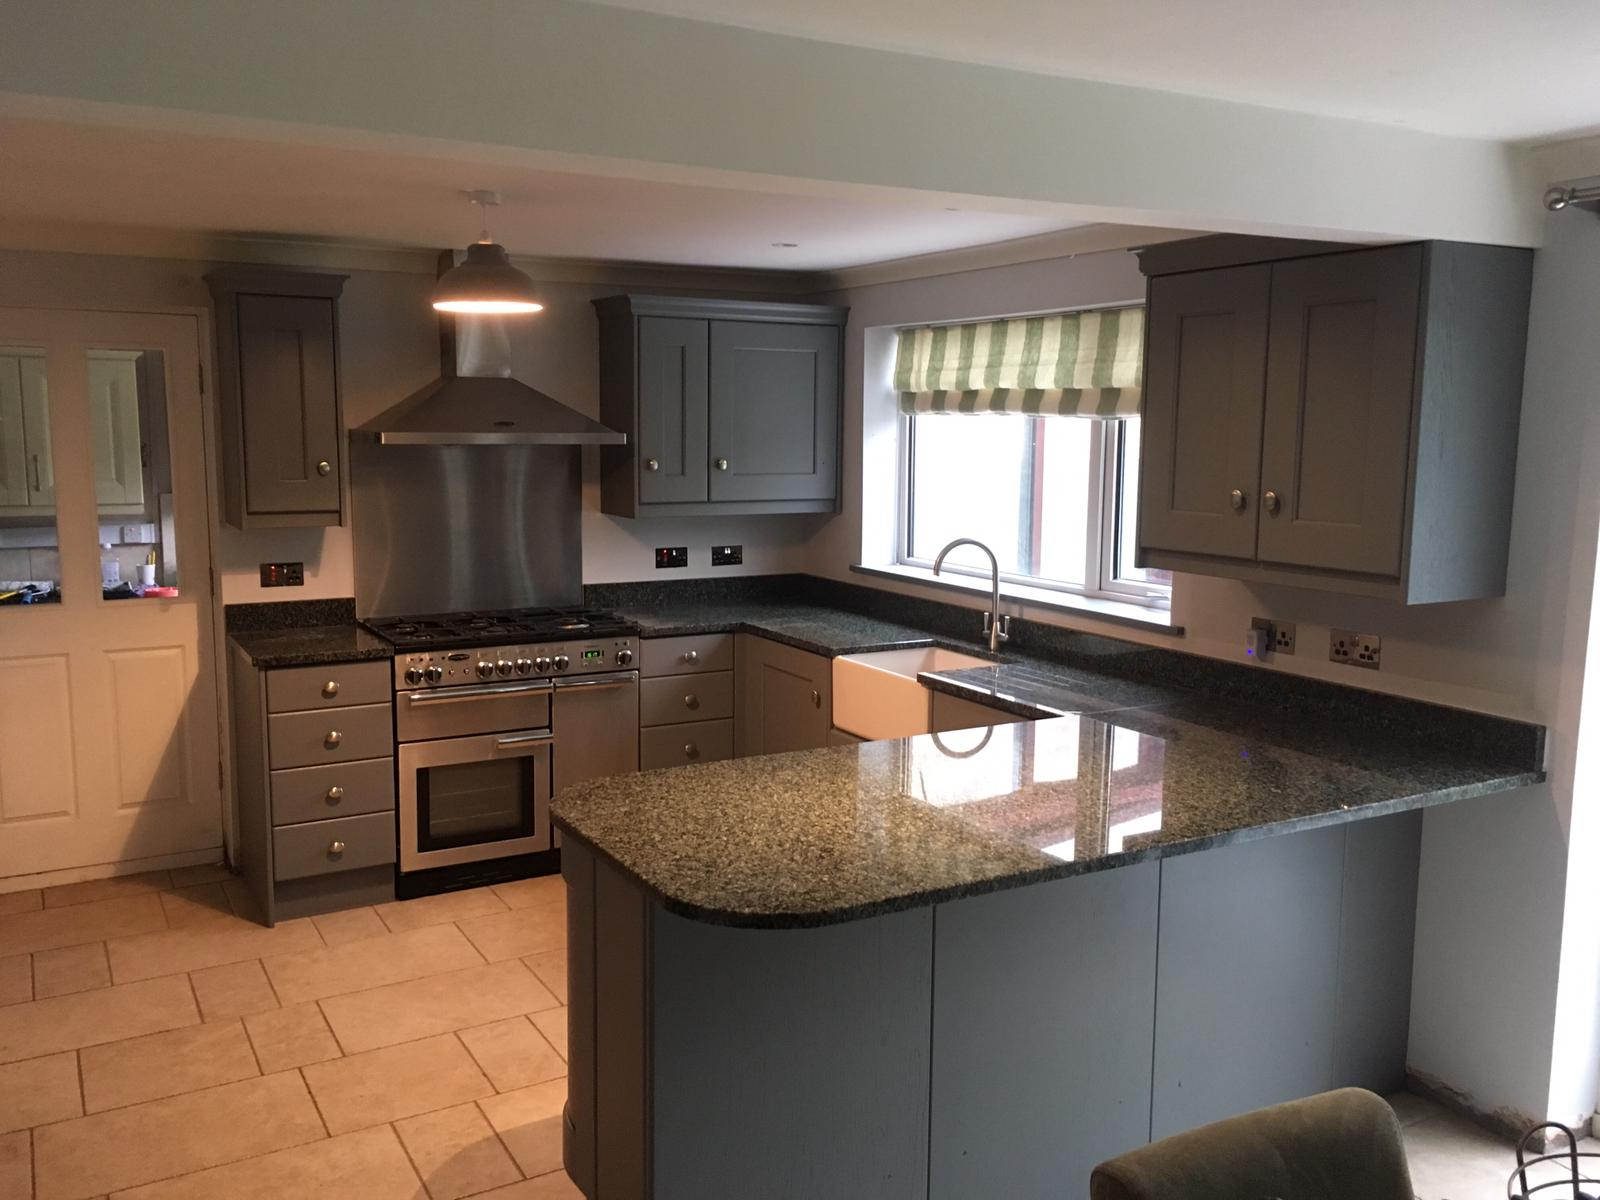 Kitchen Respray And Spray Paint Kitchen Cabinets Costs Cheshire Upvc Coating